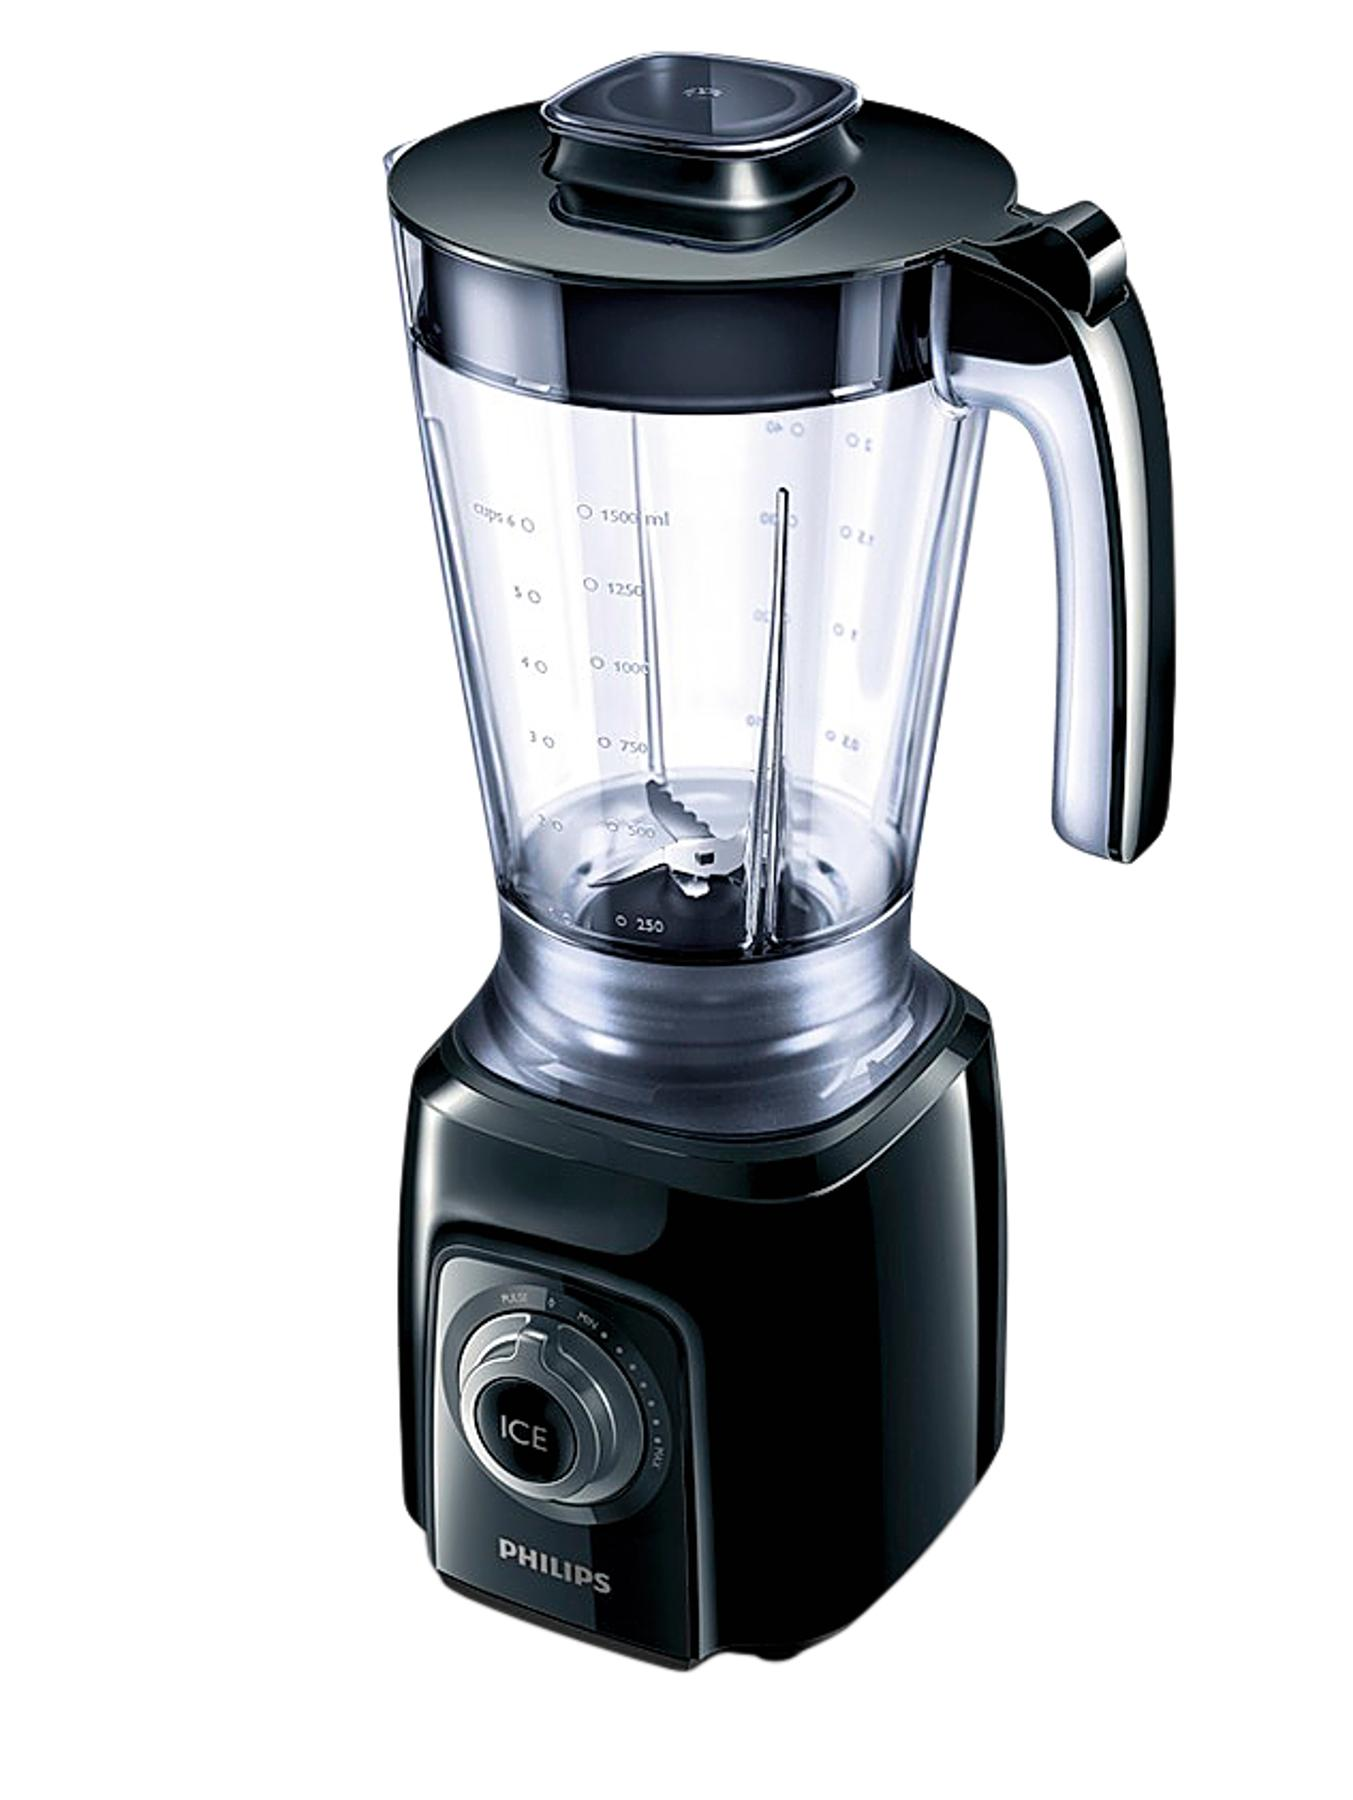 HR2160/50 Viva Collection Jug Blender - Black